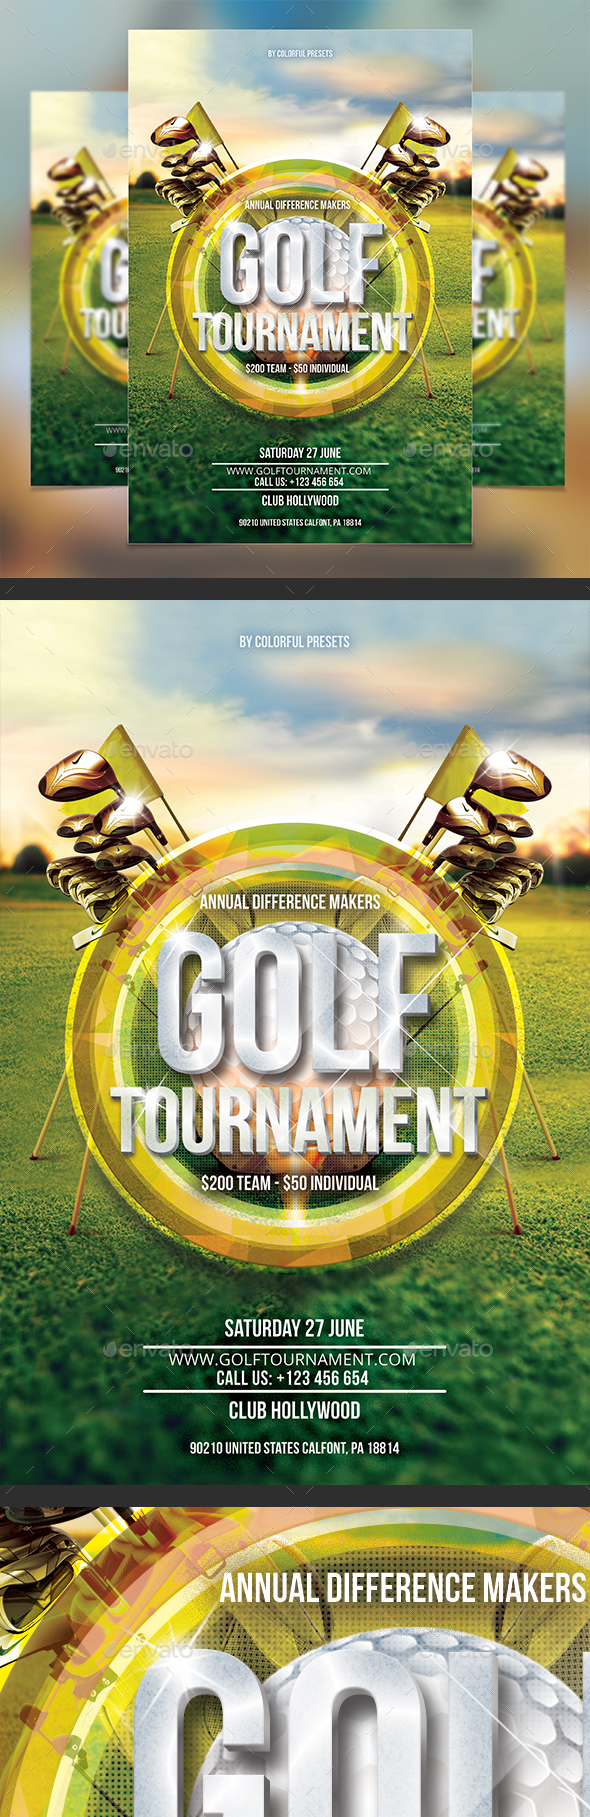 Golf Tournament Flyer Template   Sports Events